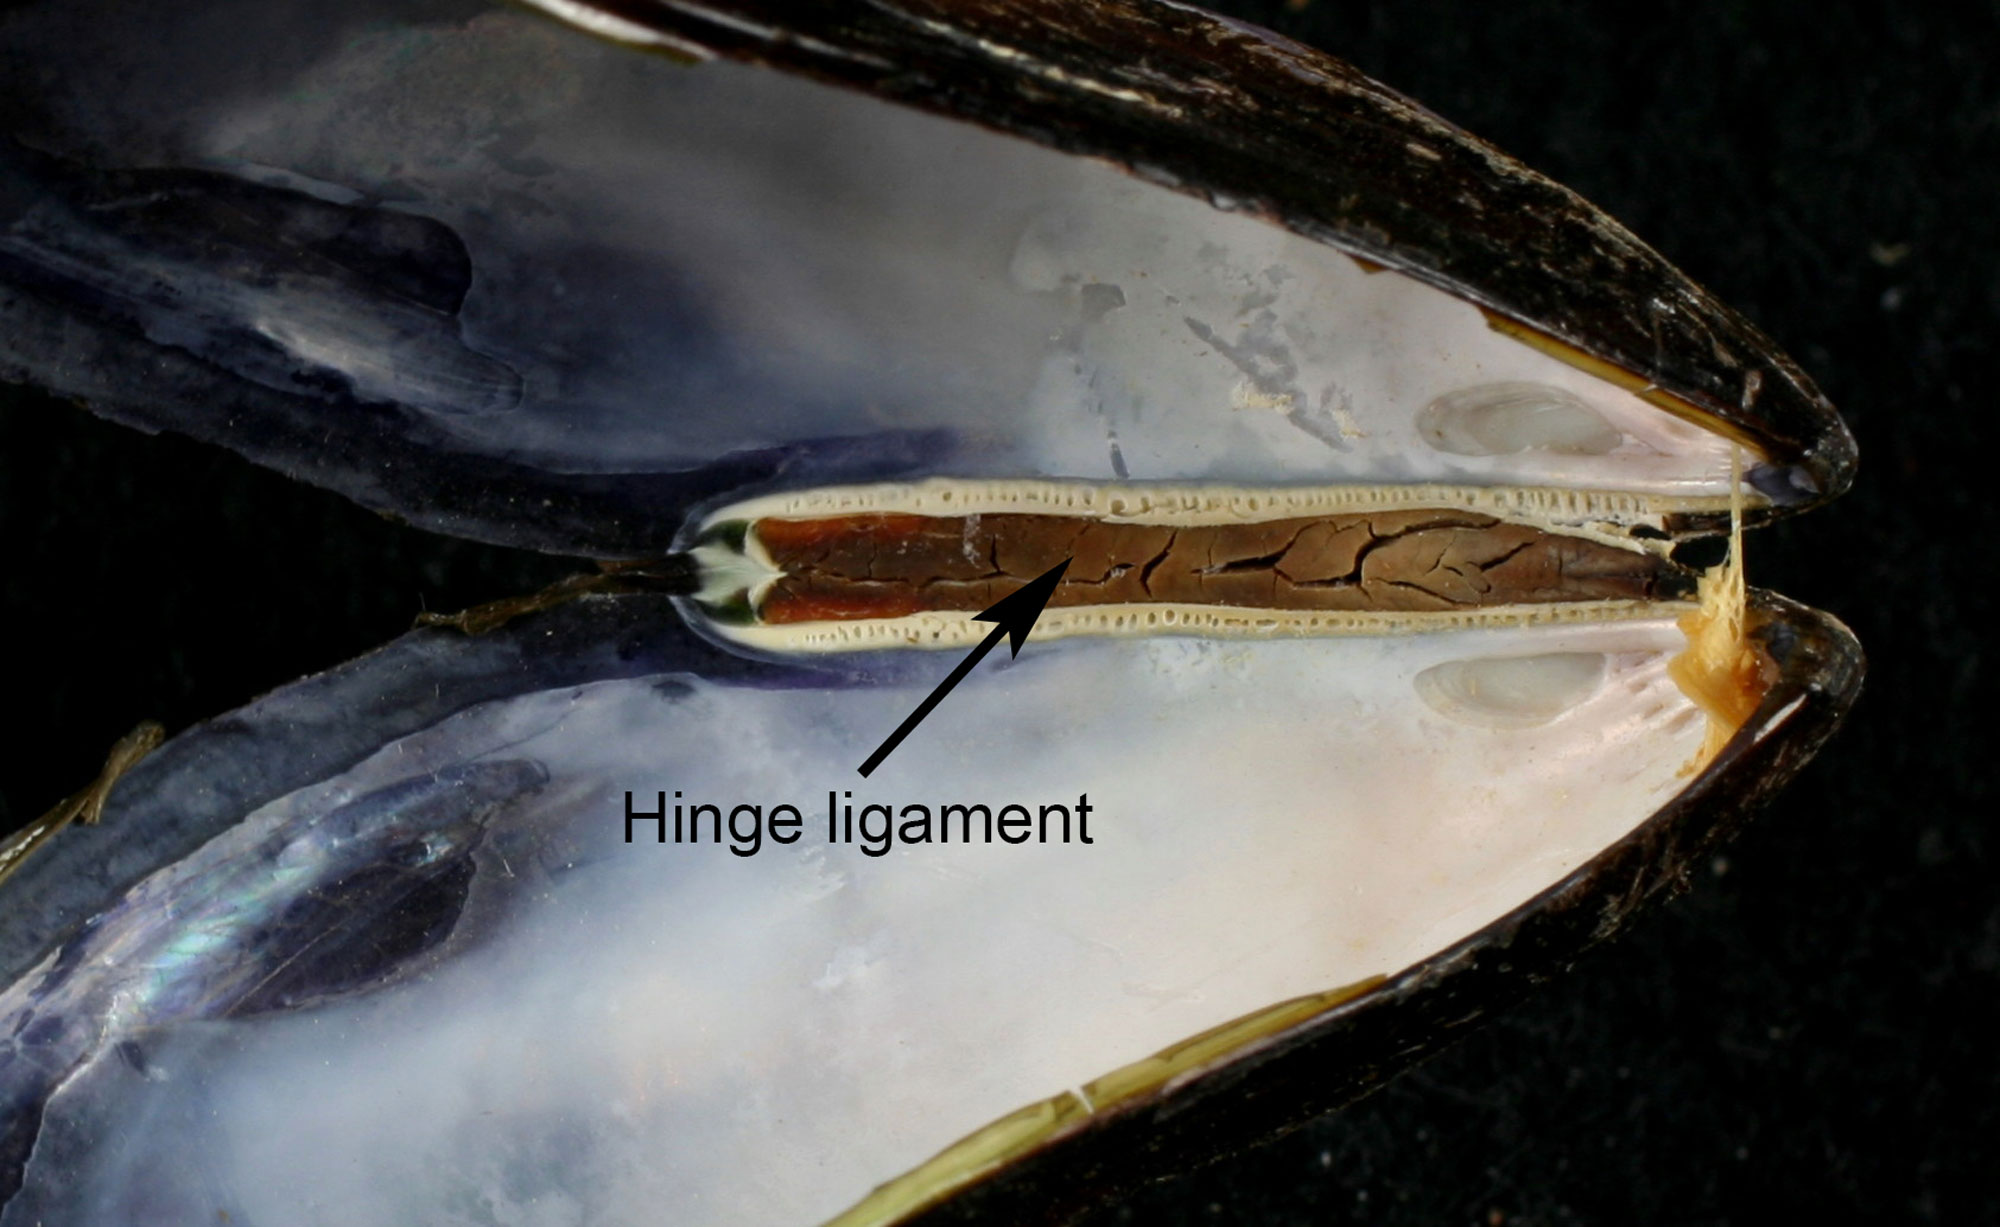 Photograph of a mussel shell with the position of the ligament identified.